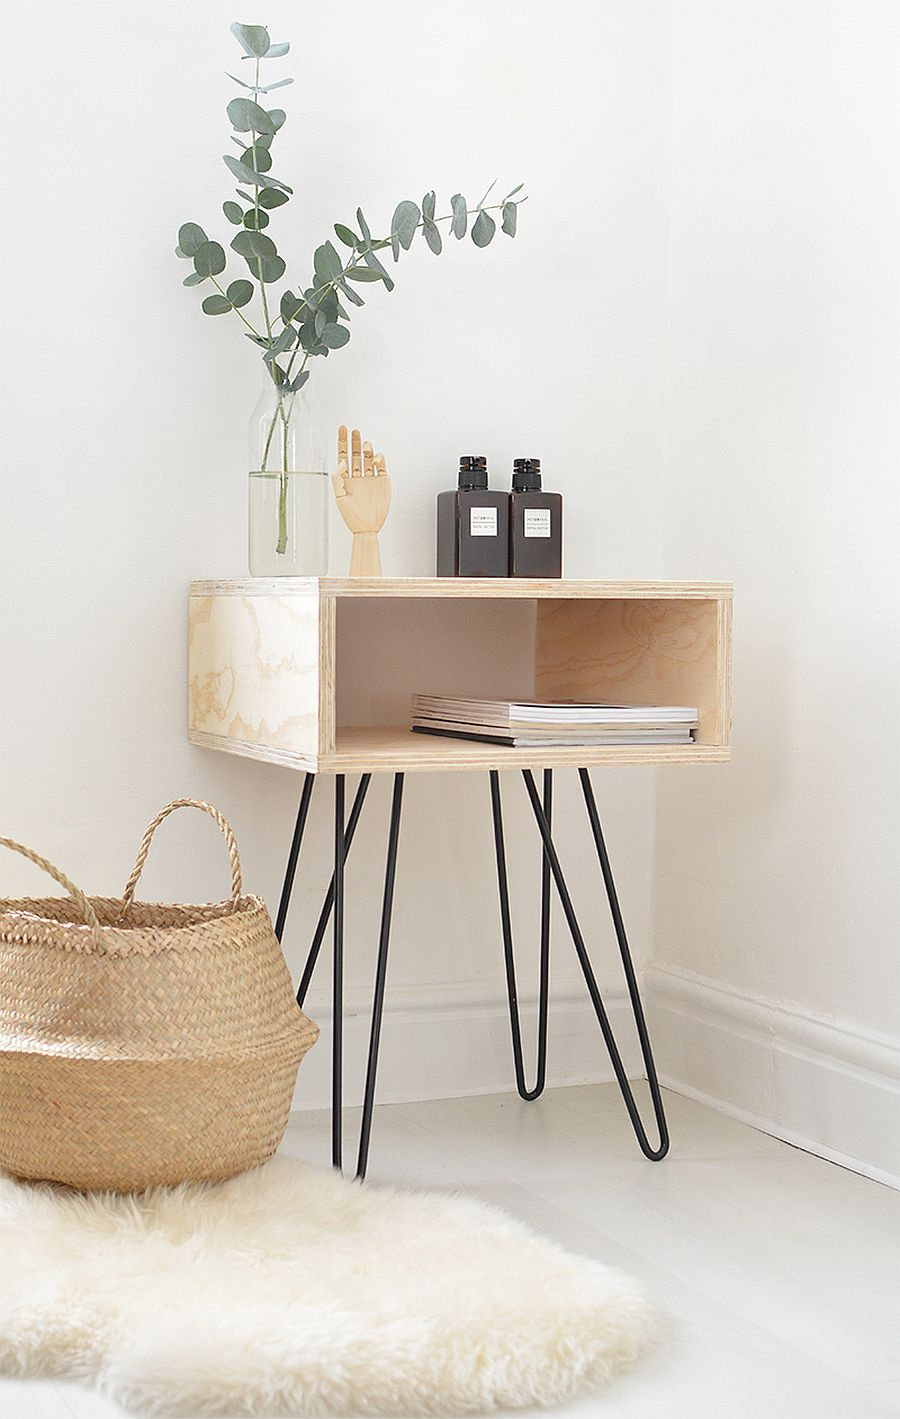 DIY Midcentury modern nightstand with hairpin legs